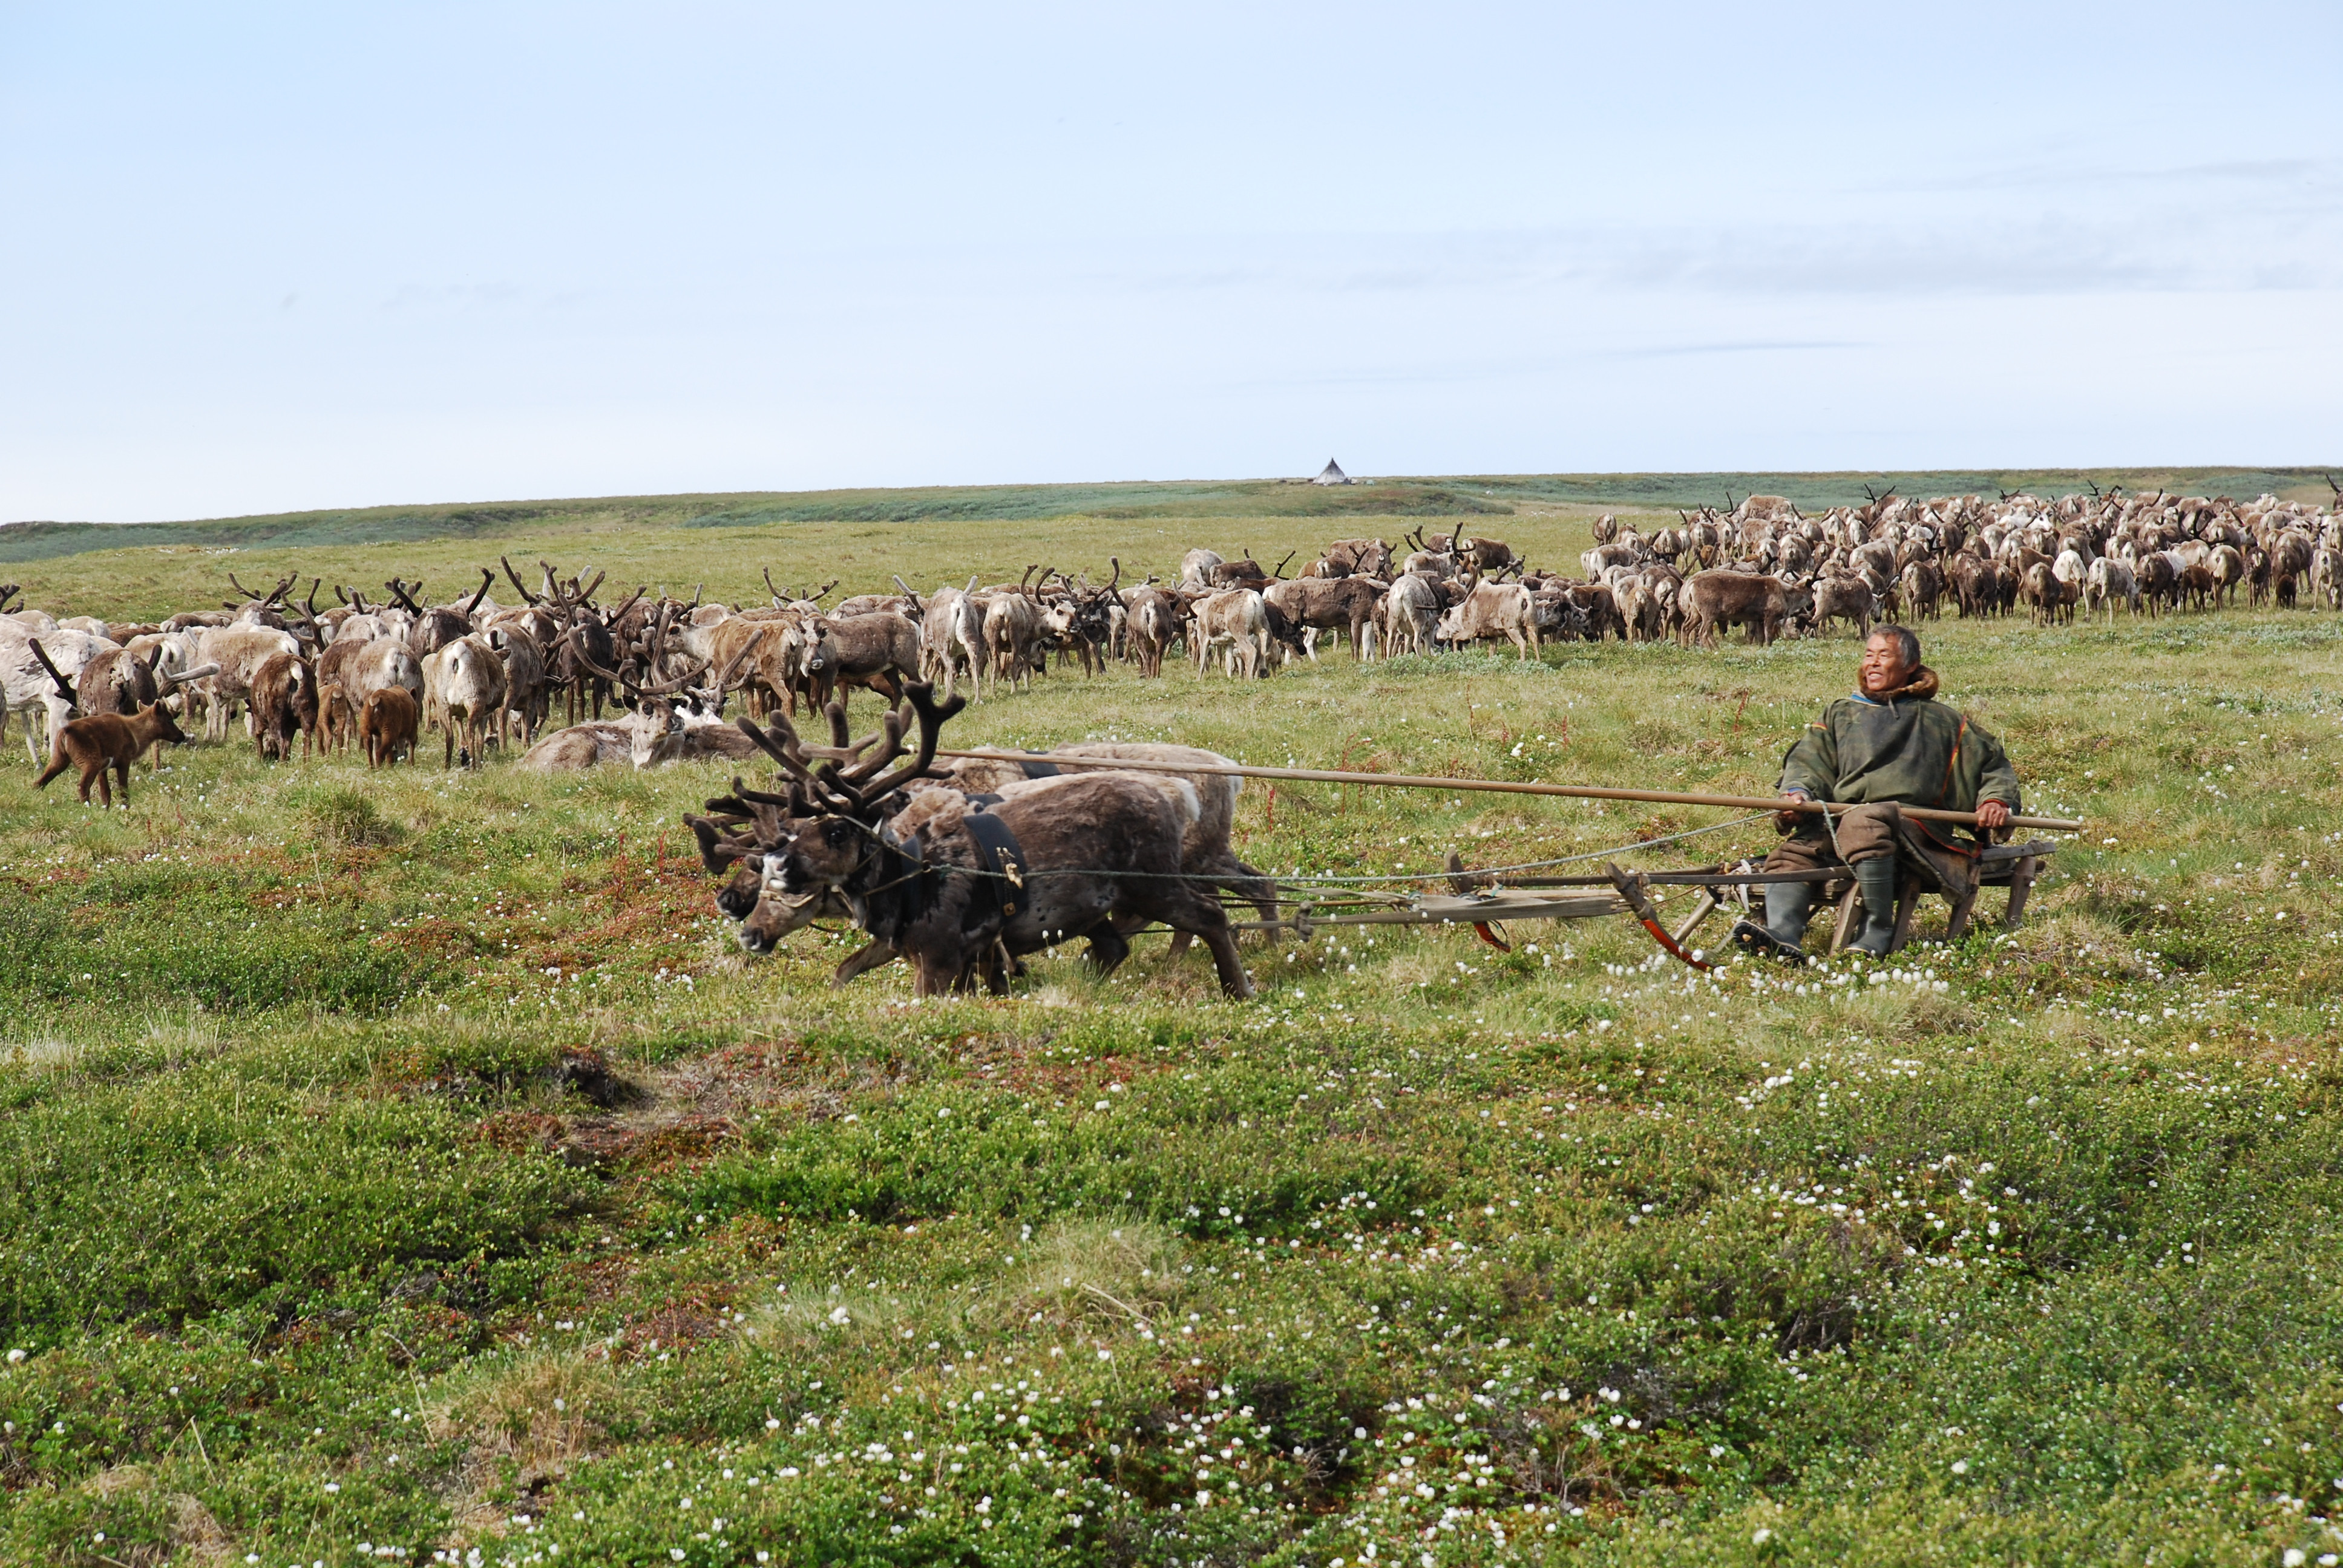 Reindeer deaths in the Arctic linked with retreating sea ice